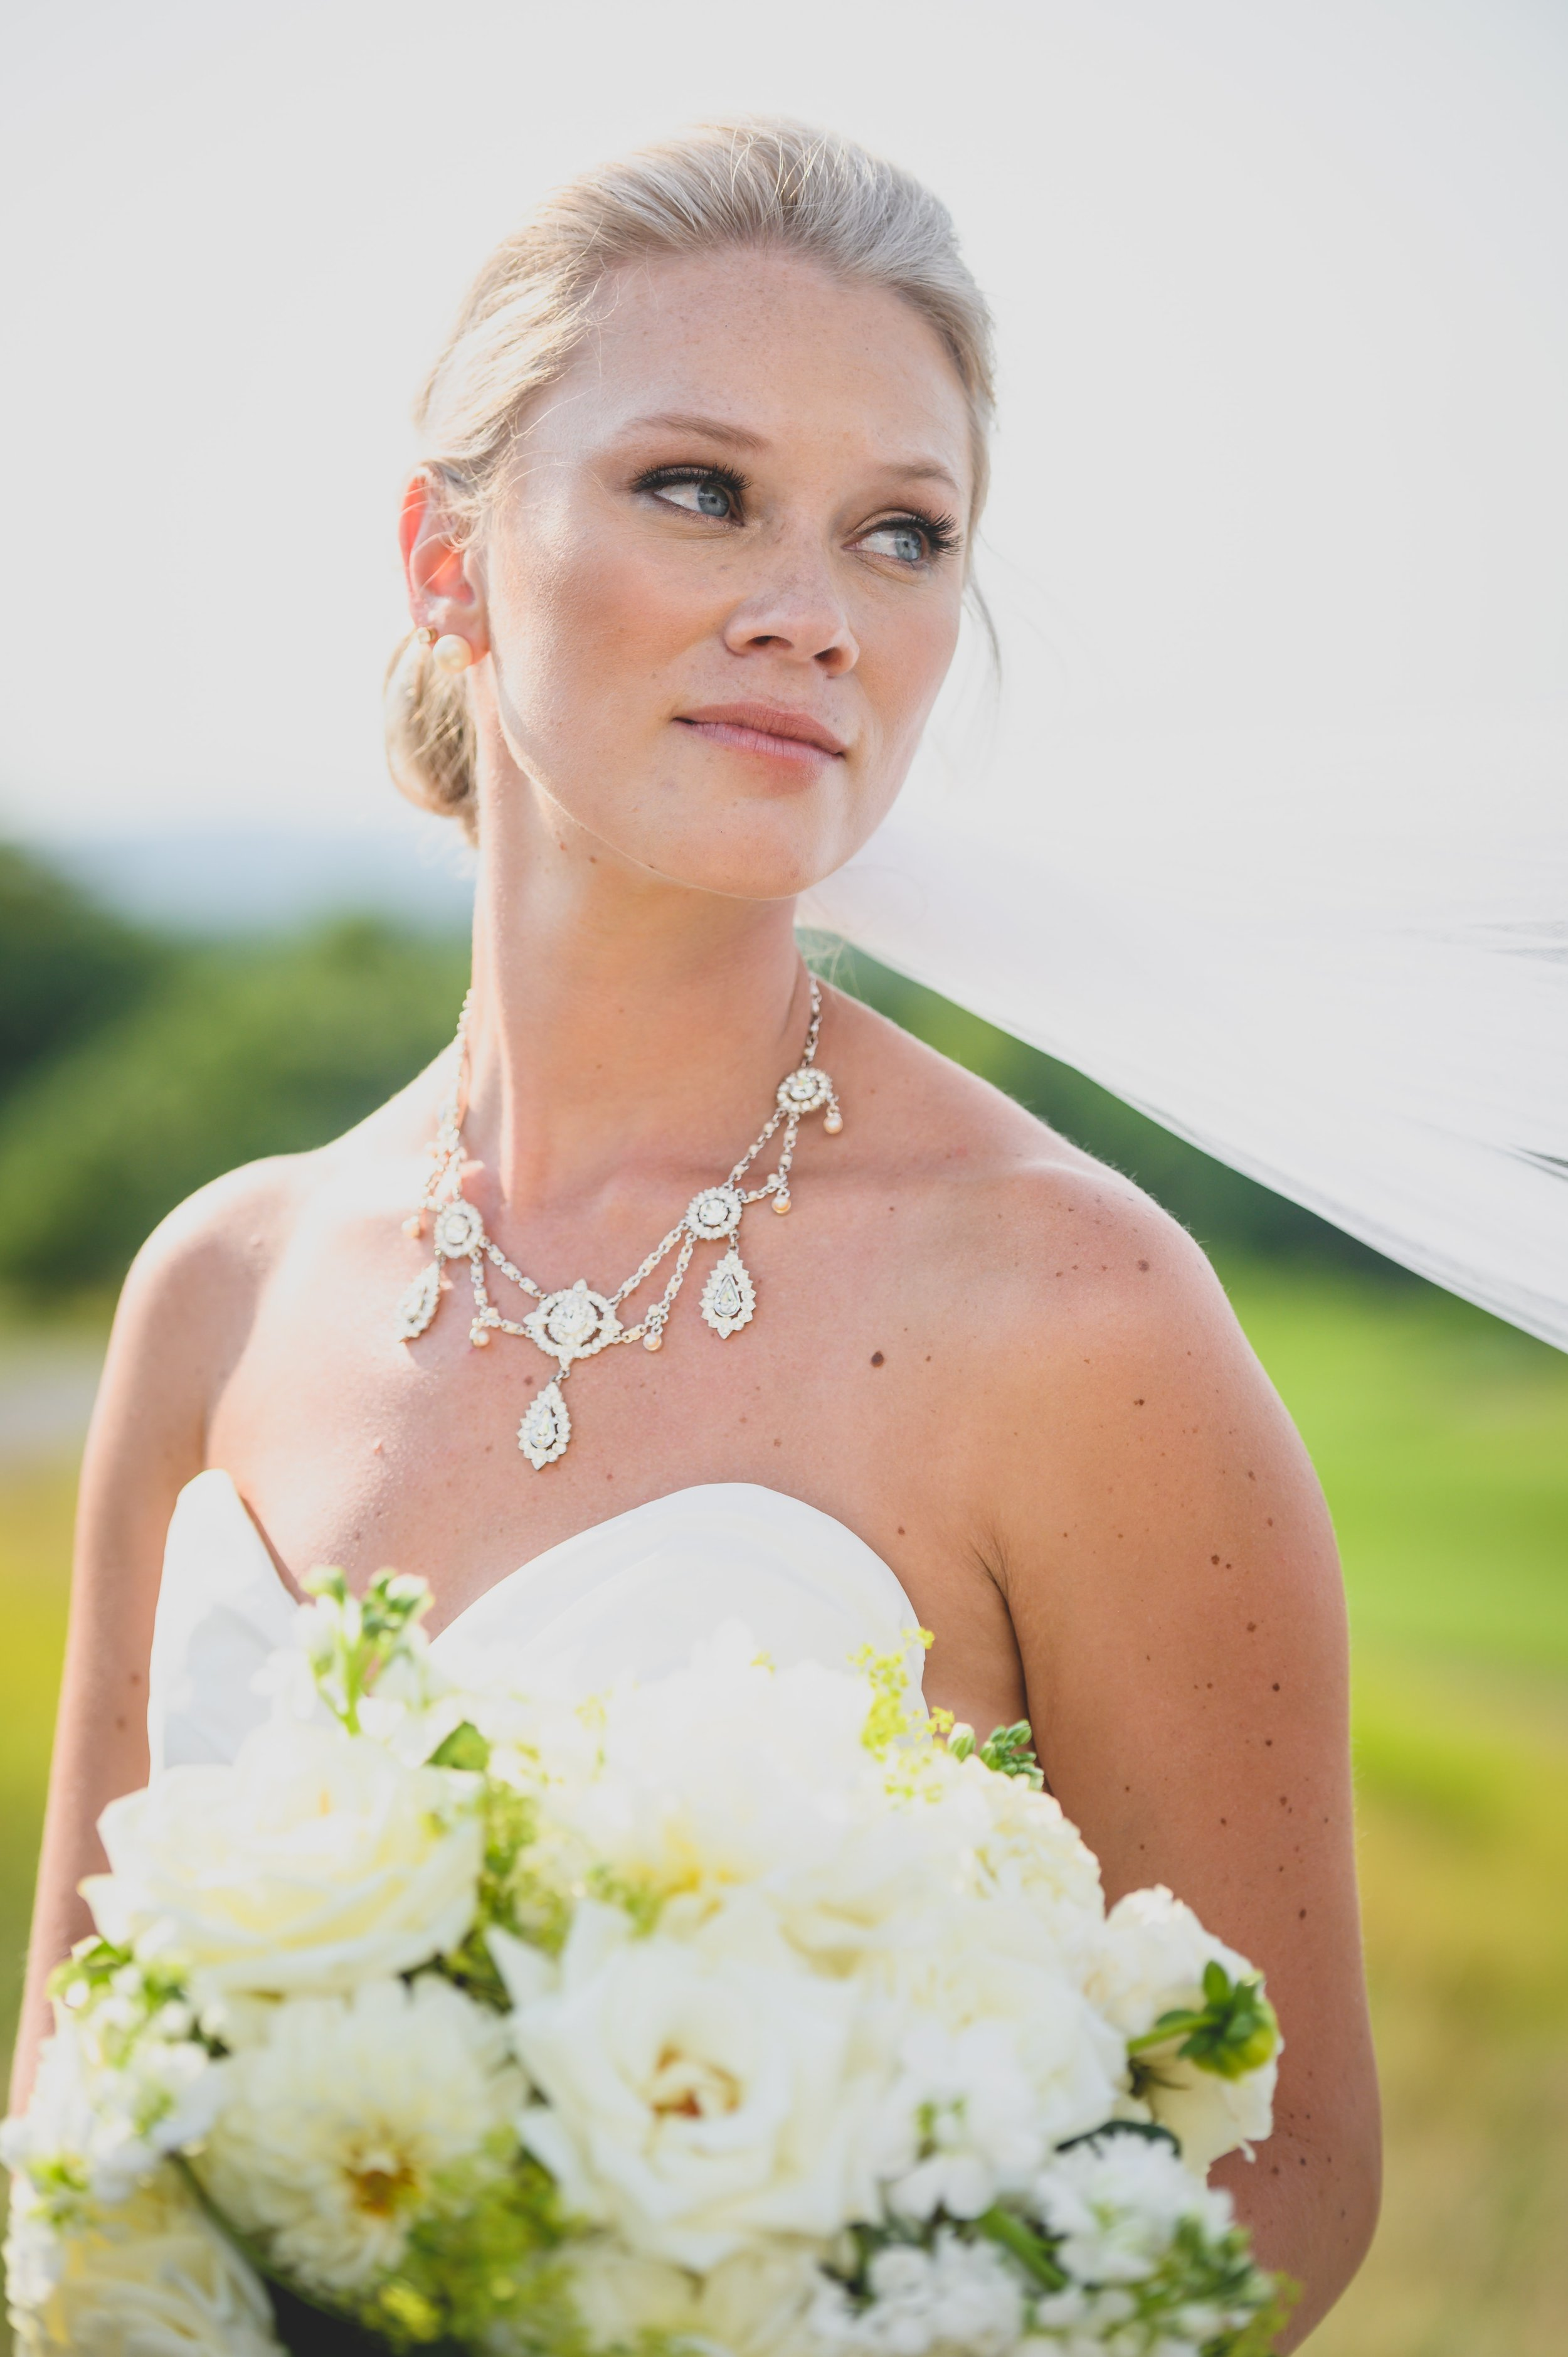 A bride holding a bouquet of flowers with her veil blowing in the wind.